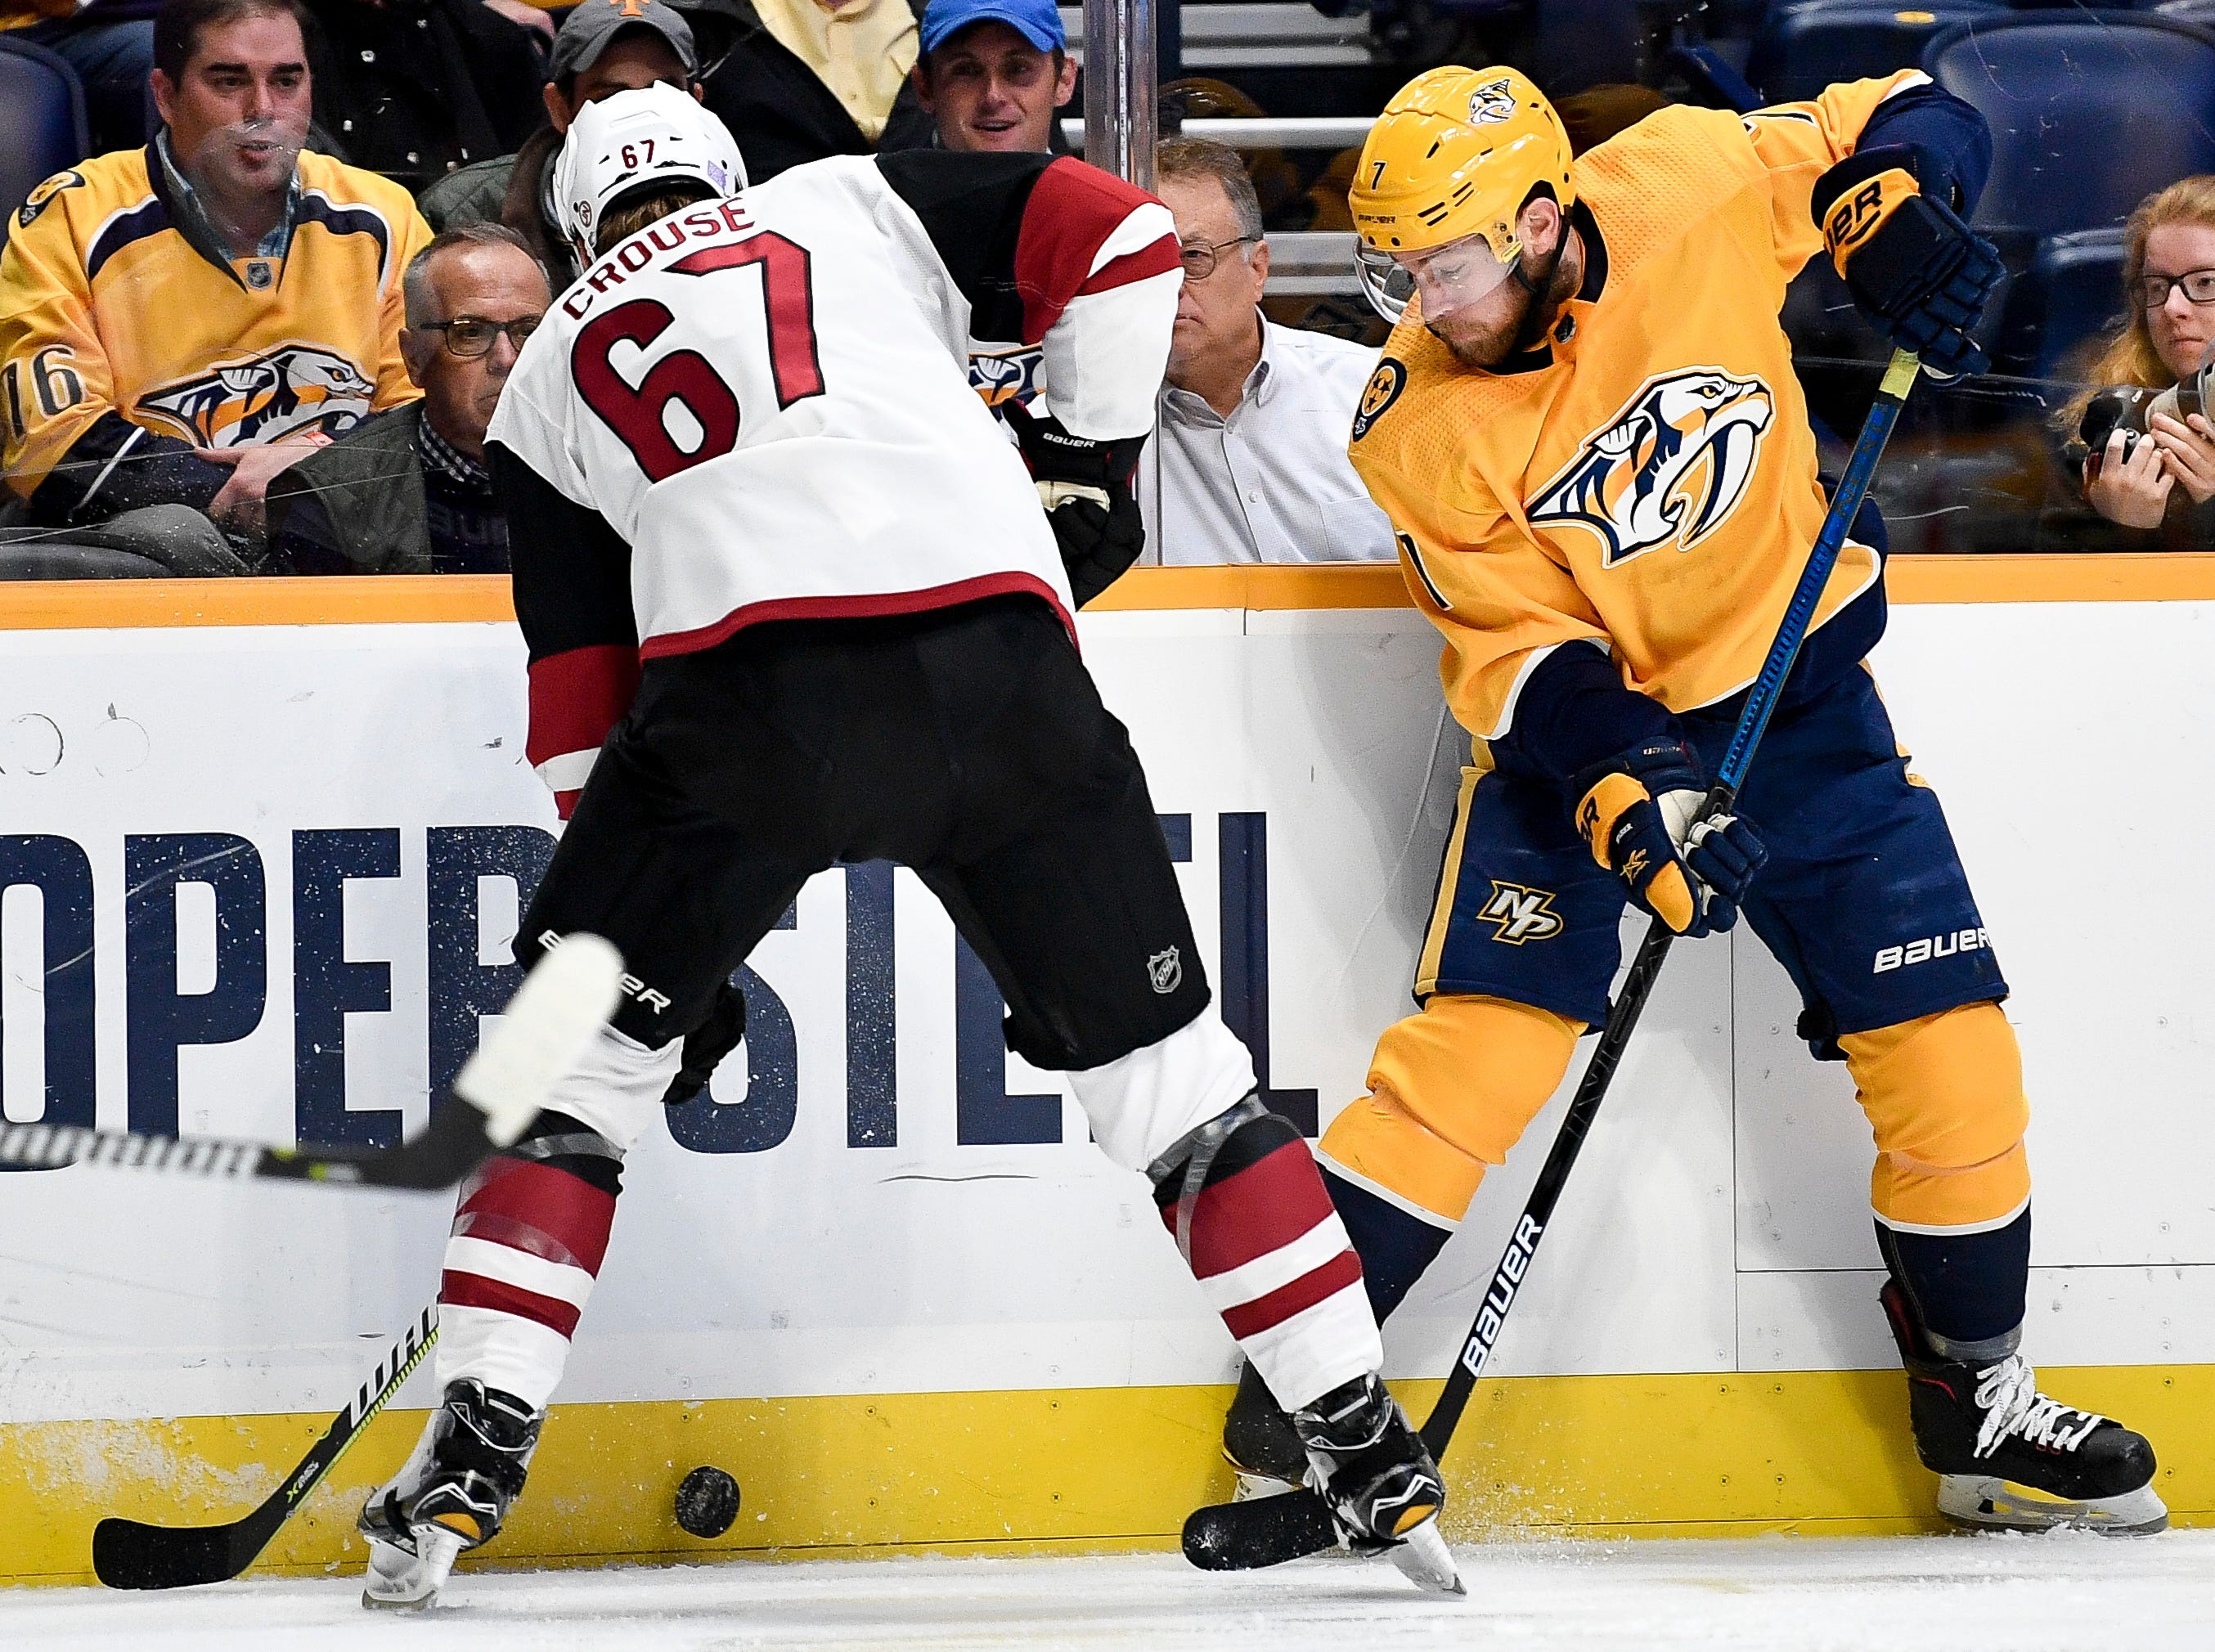 Arizona Coyotes left wing Lawson Crouse (67) defends against Nashville Predators defenseman Yannick Weber (7) during the first period at Bridgestone Arena in Nashville, Tenn., Thursday, Nov. 29, 2018.